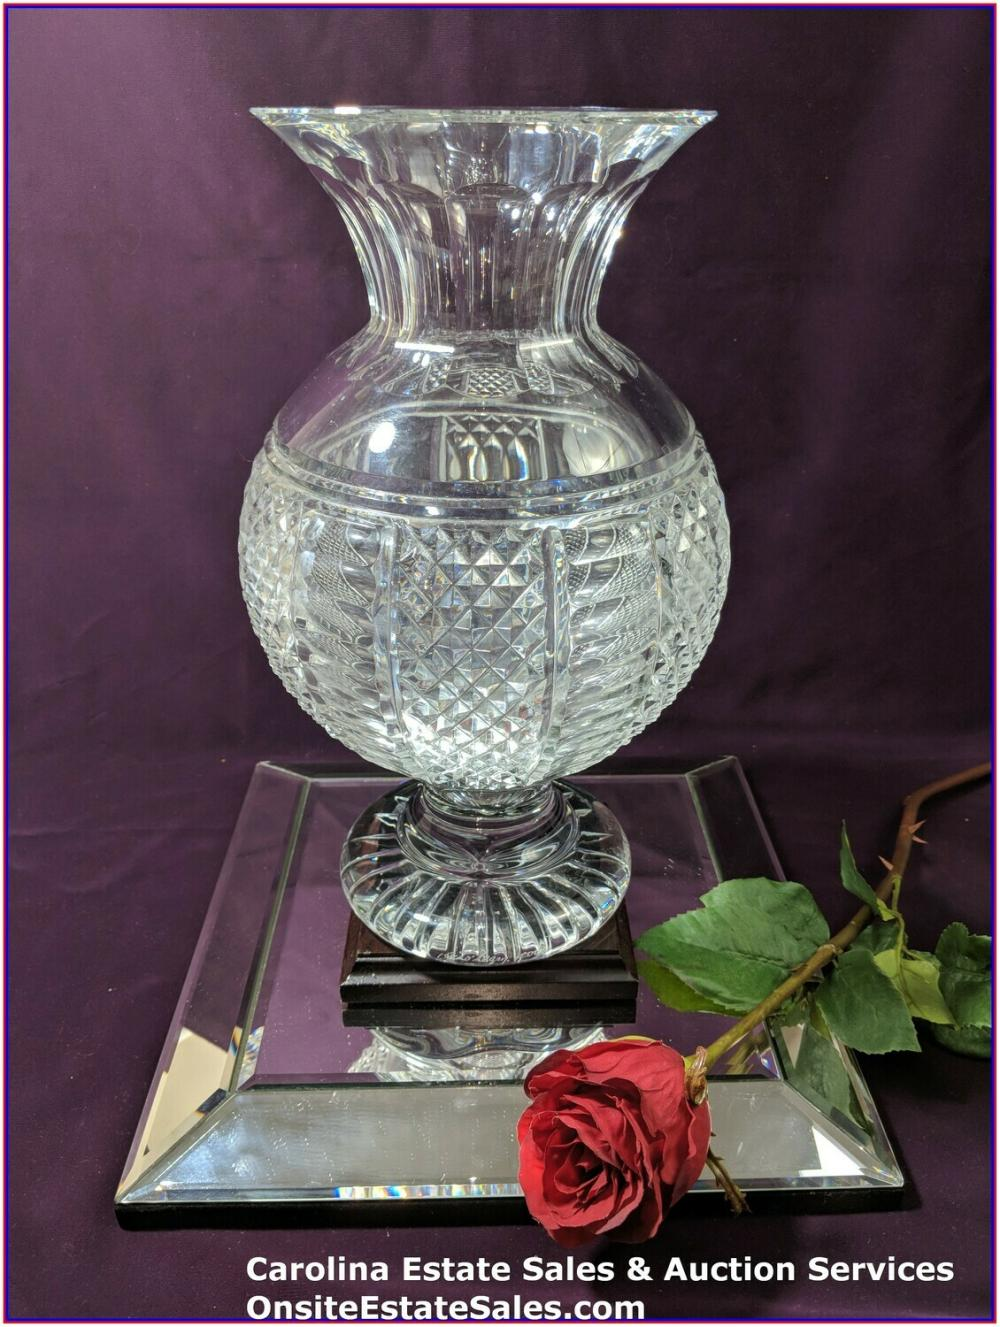 Waterford Crystal Jim O'Leary Vase 2004